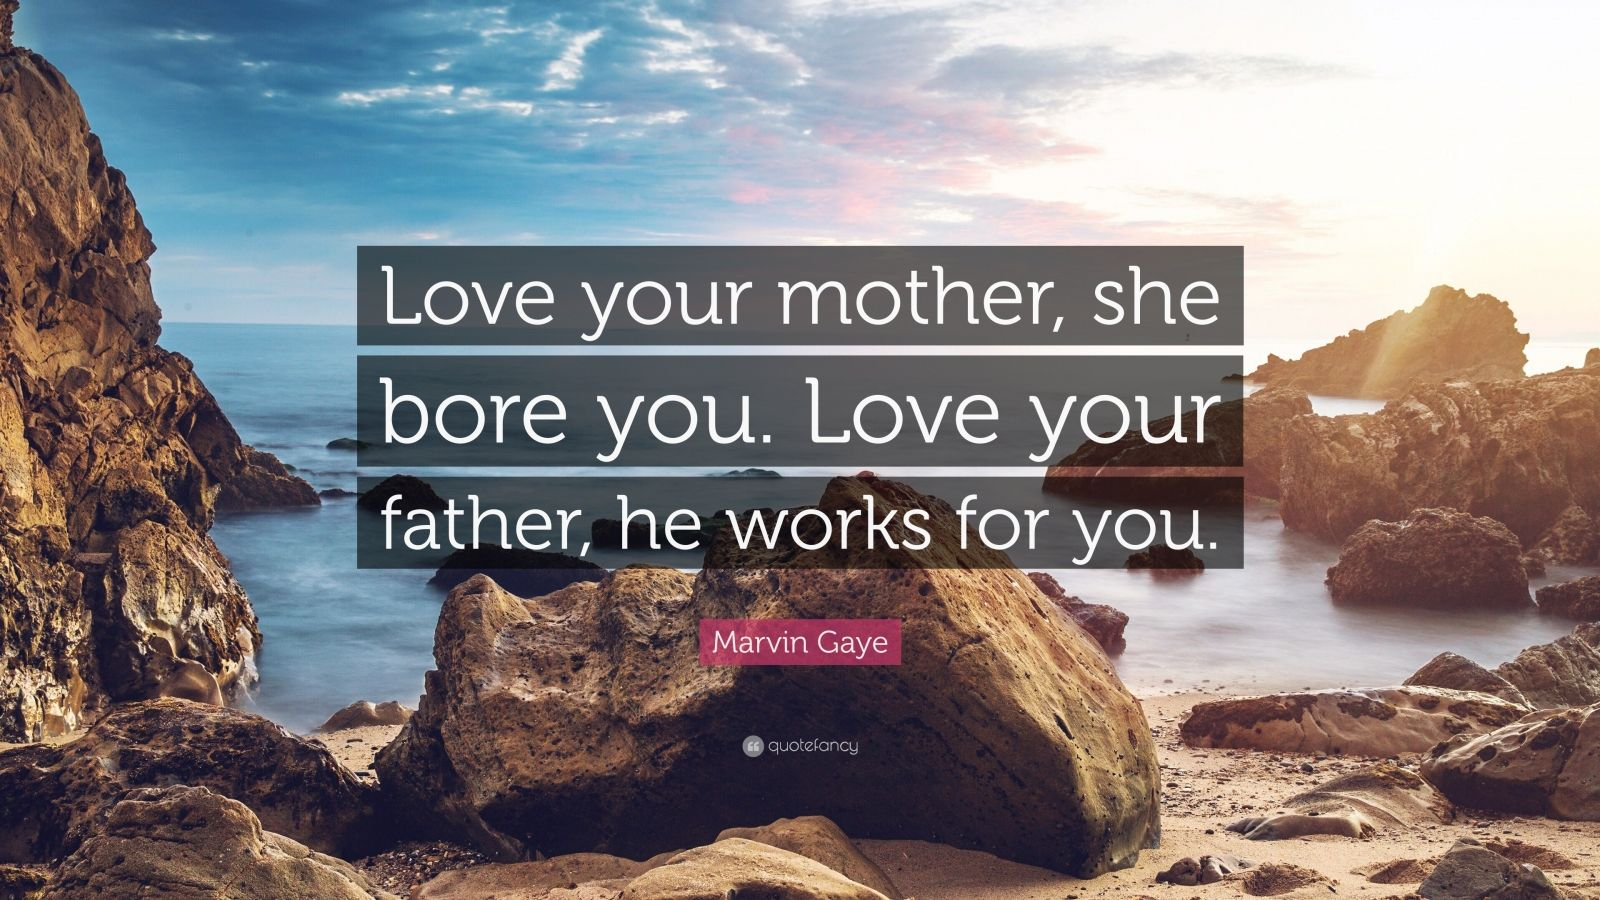 """Marvin Gaye Quote: """"Love your mother, she bore you. Love your father, he works for you."""""""